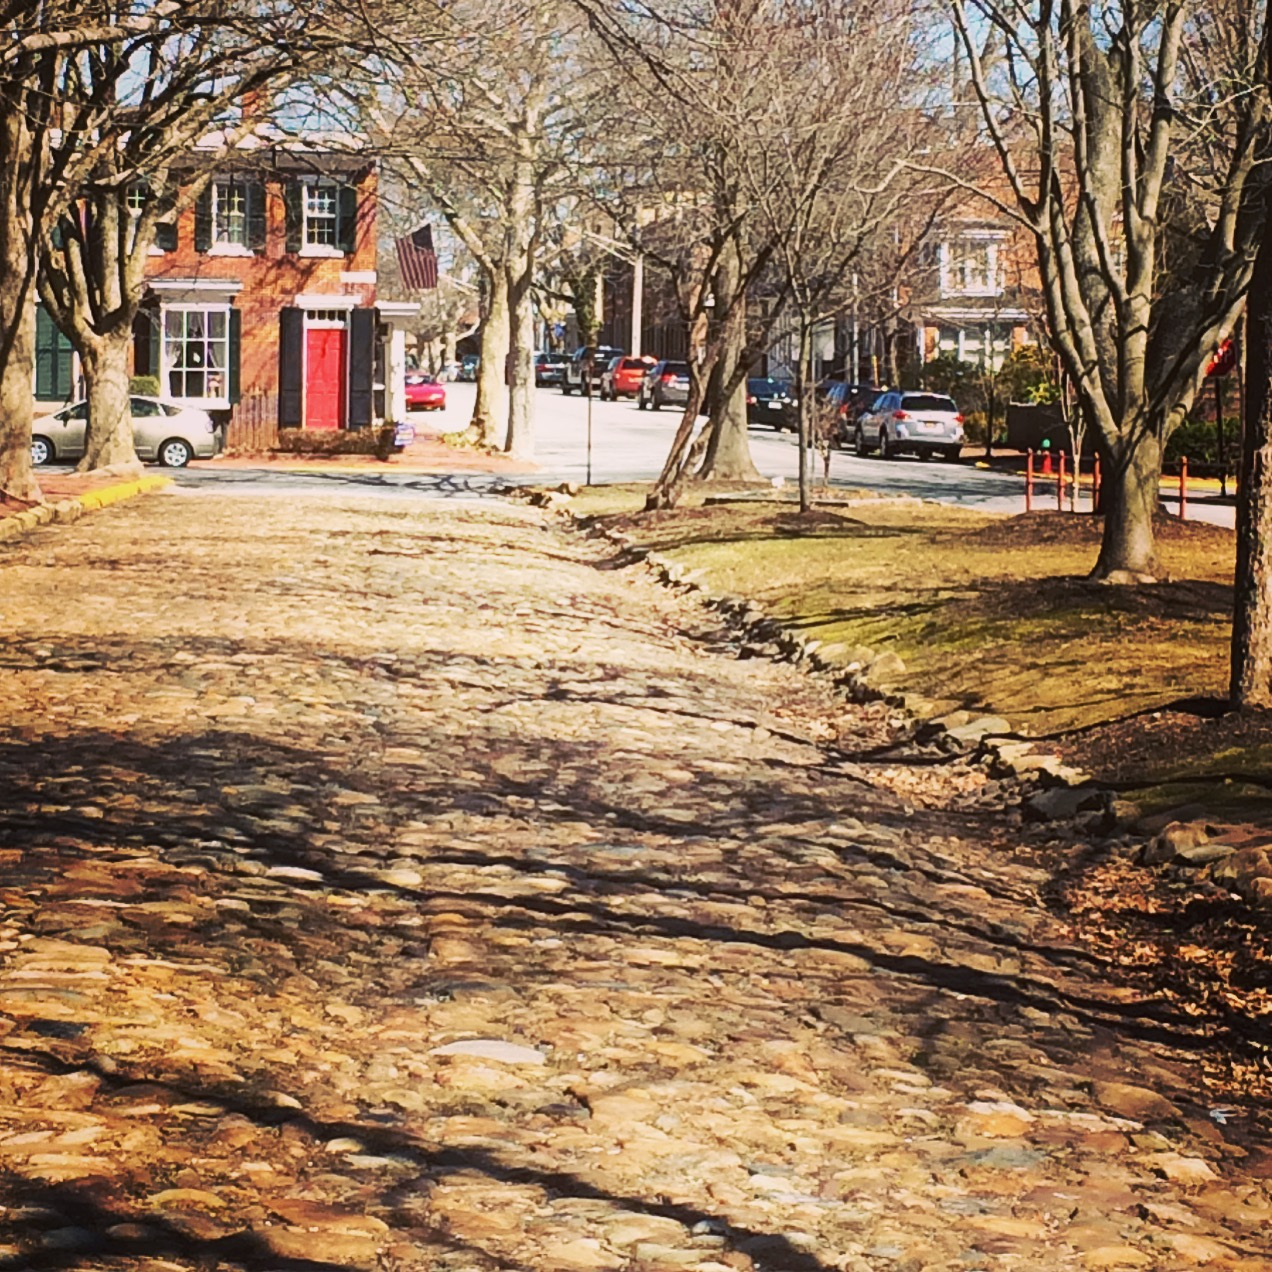 Historic New Castle, Delaware